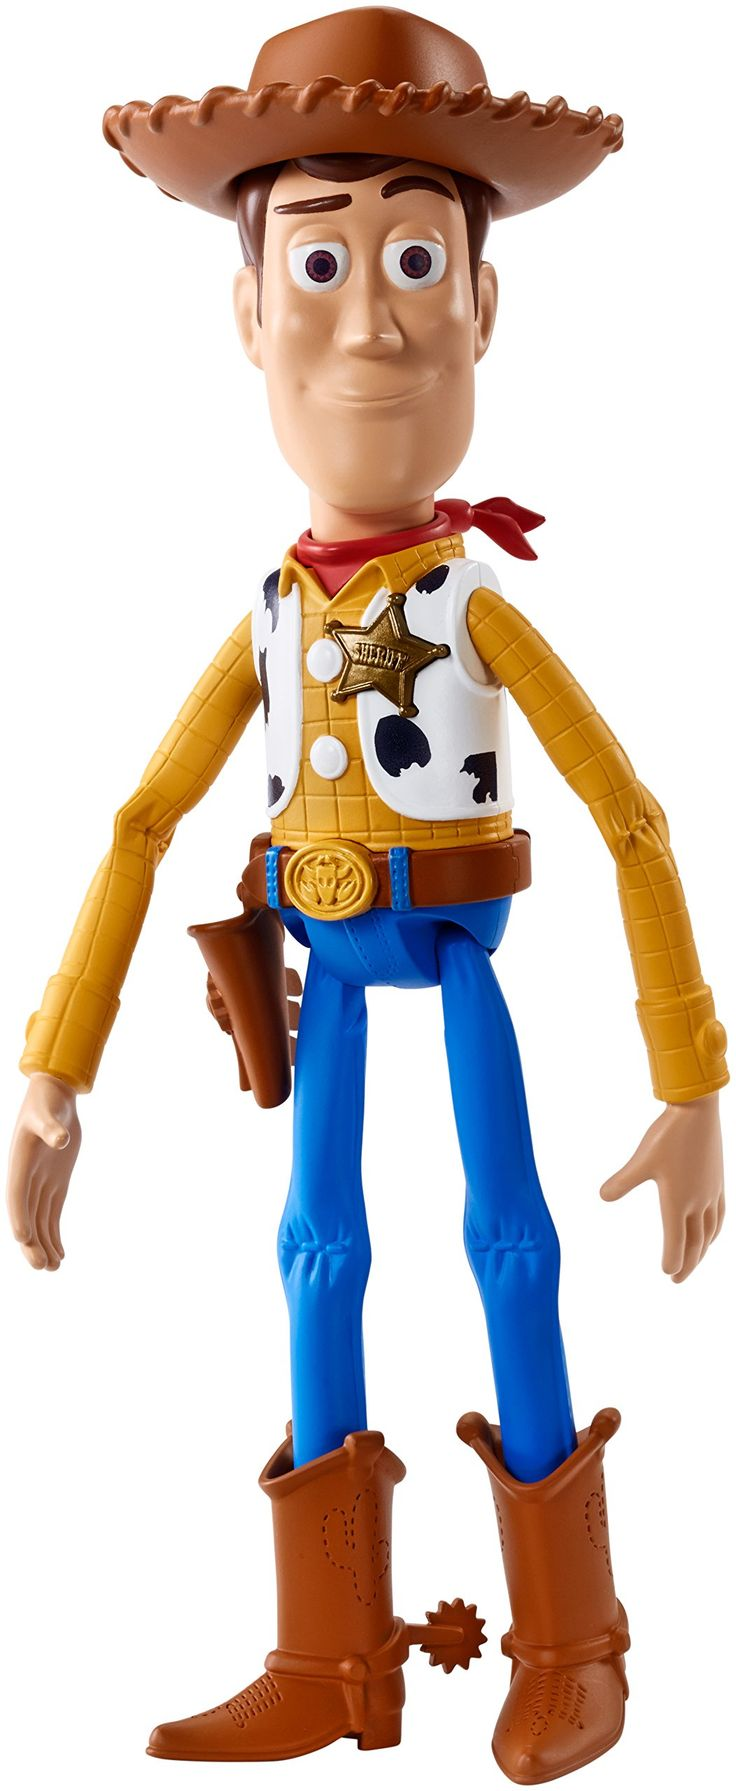 toy story - photo #25